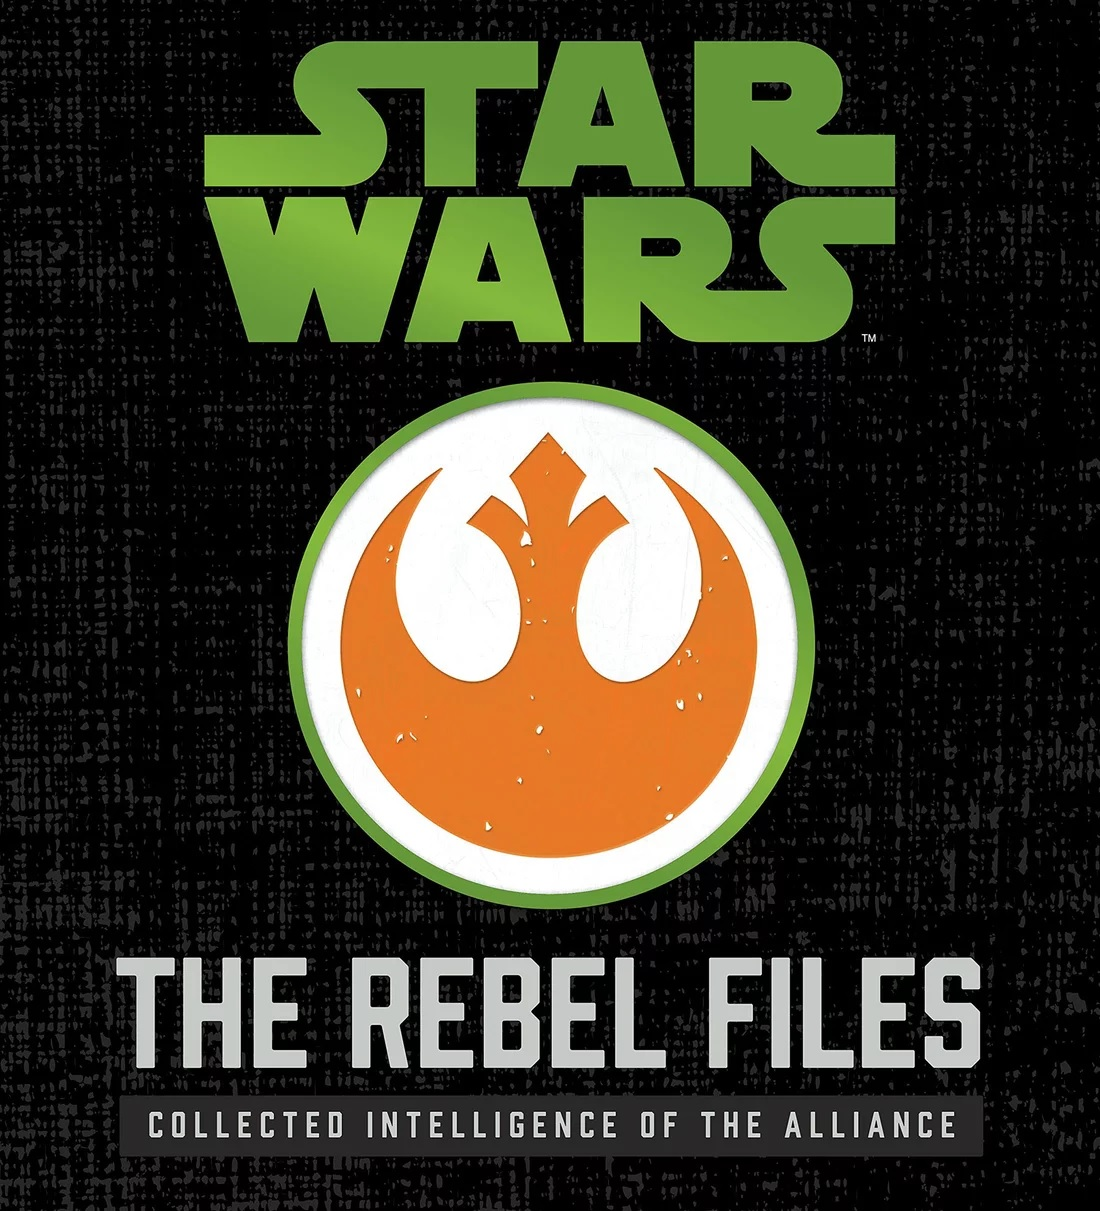 'Star Wars: The Rebel Files' Deluxe Edition